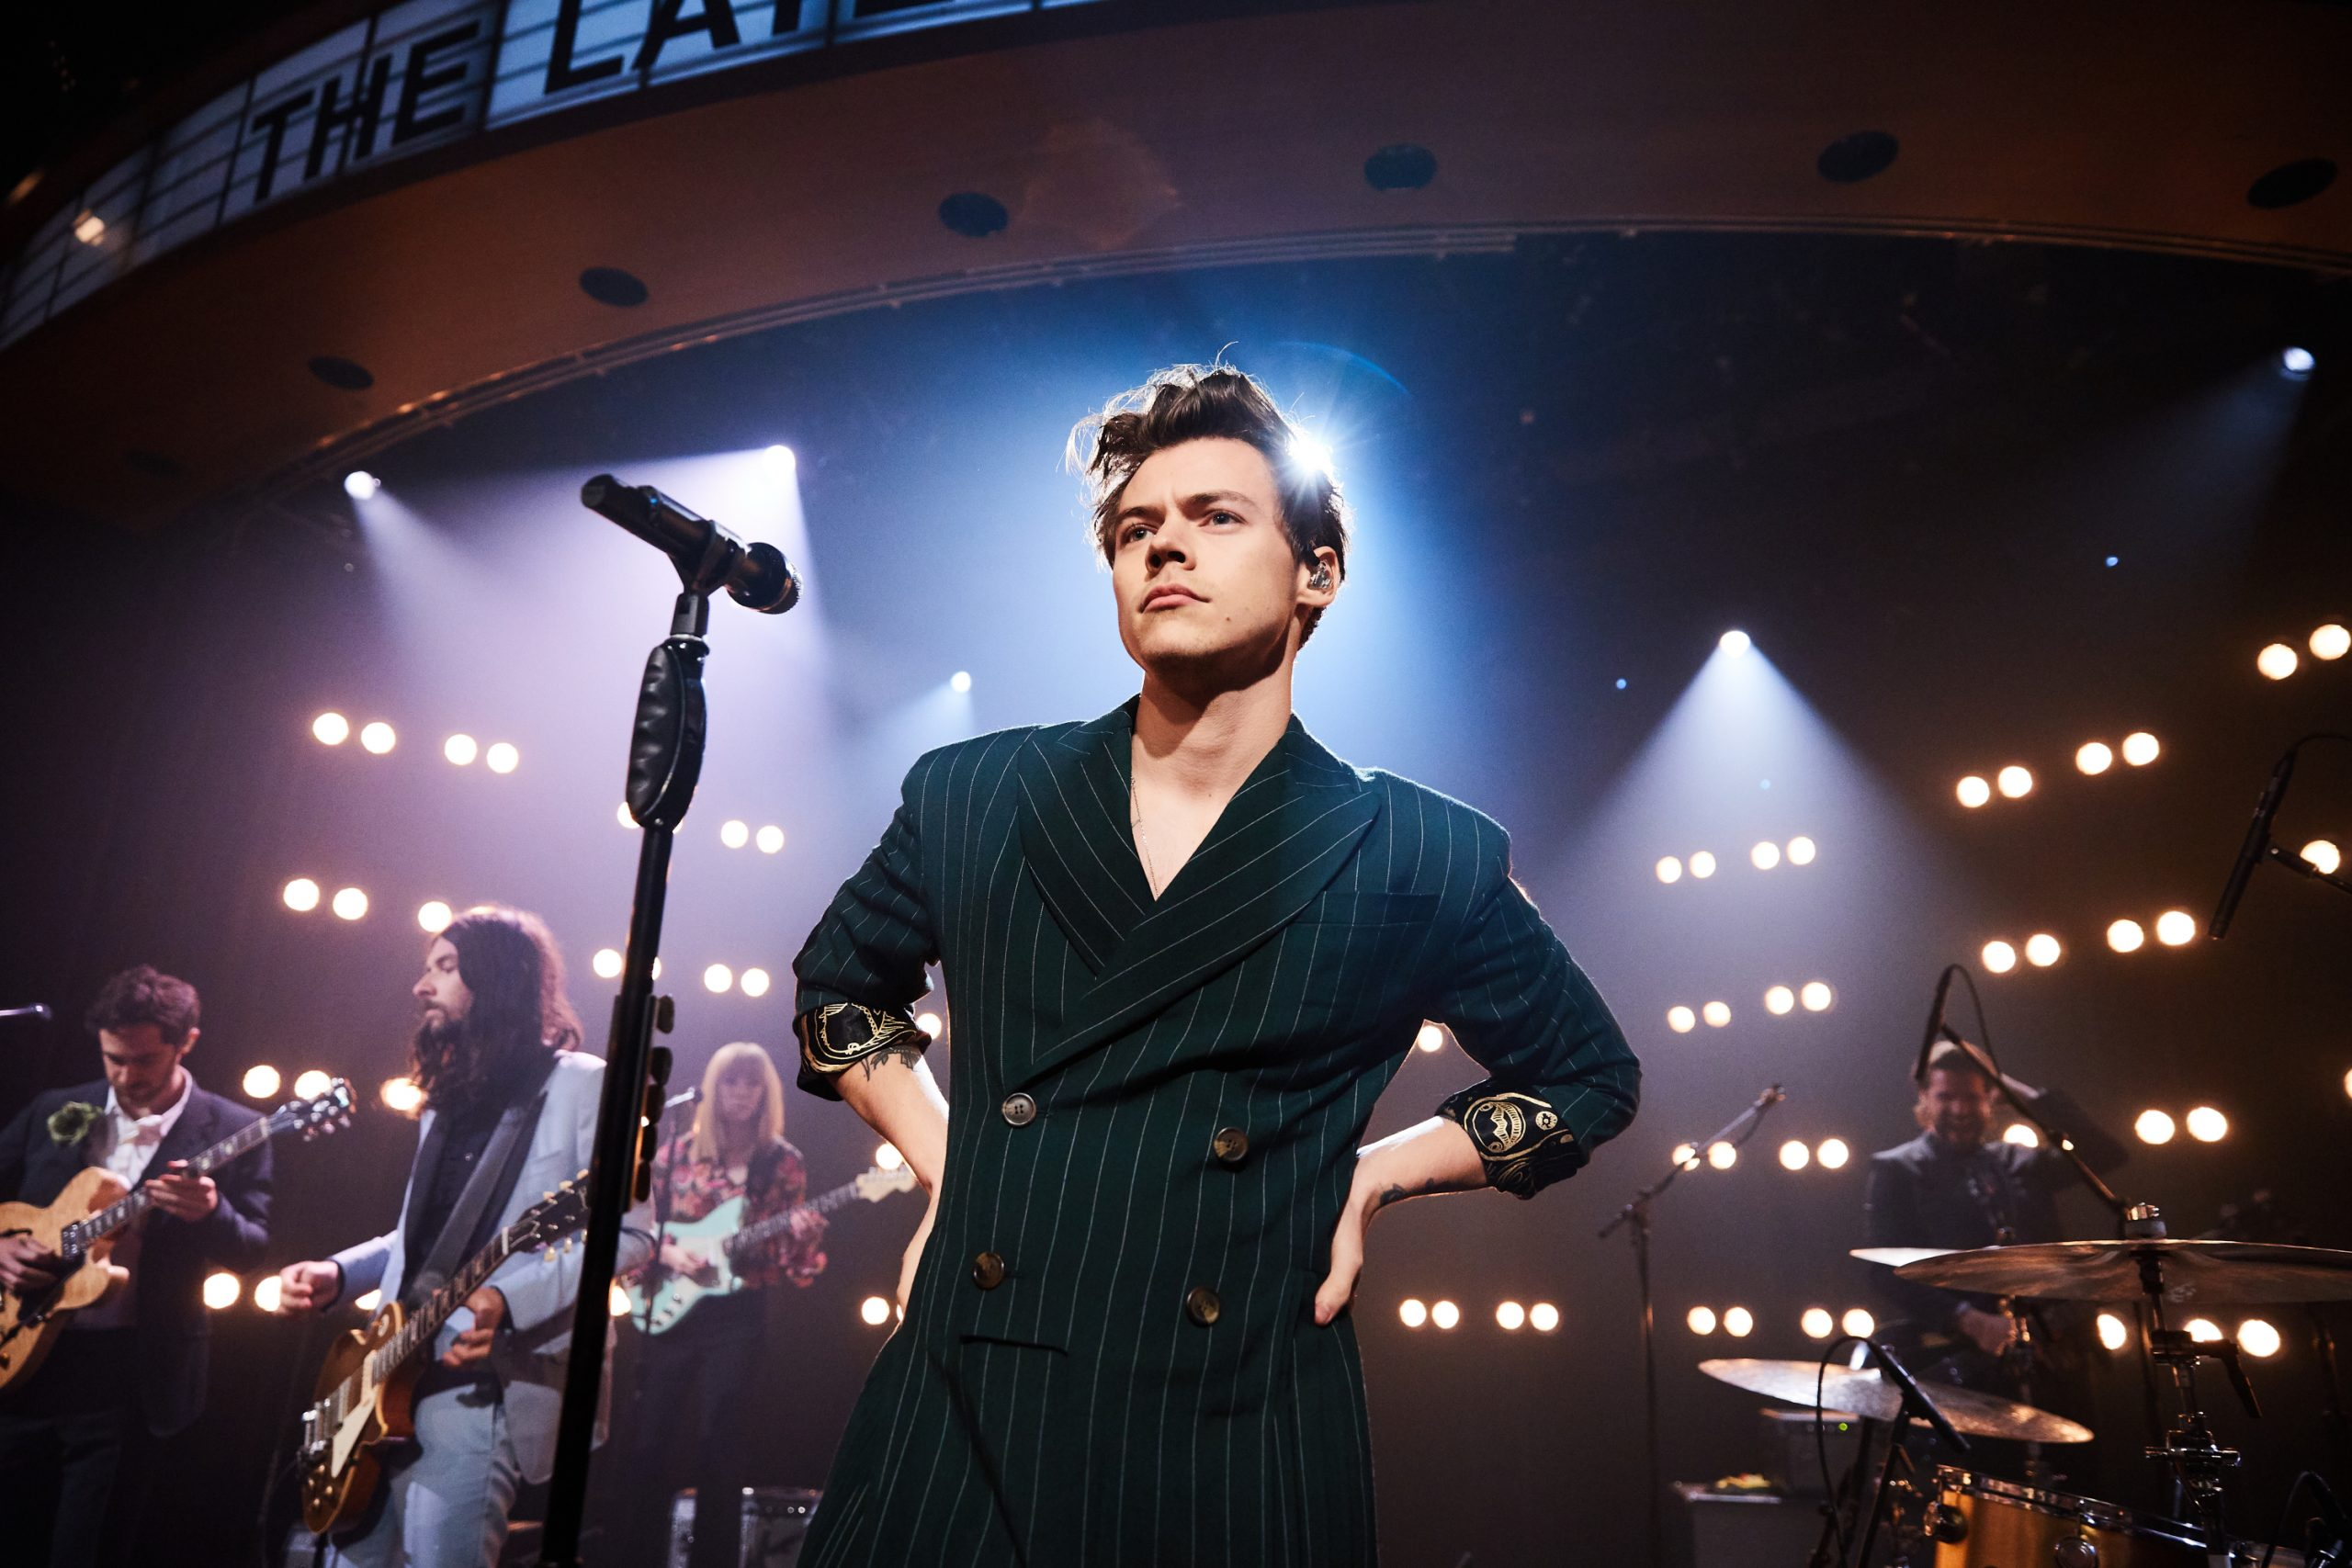 HARRY STYLES extends his World Tour with another show in TORONTO!